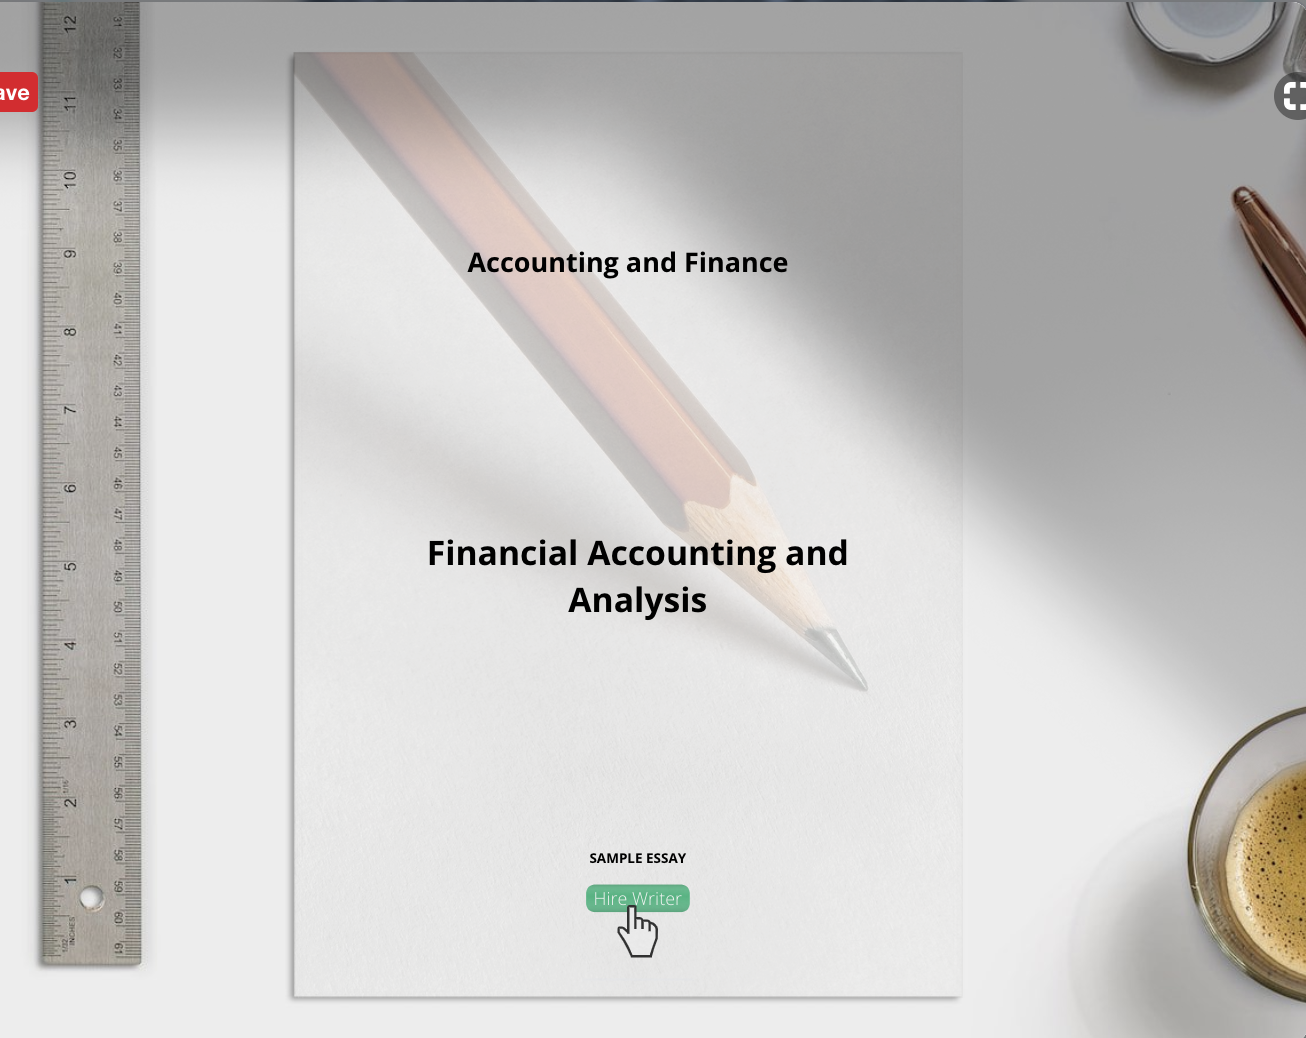 Financial Accounting and Analysis Essay sample